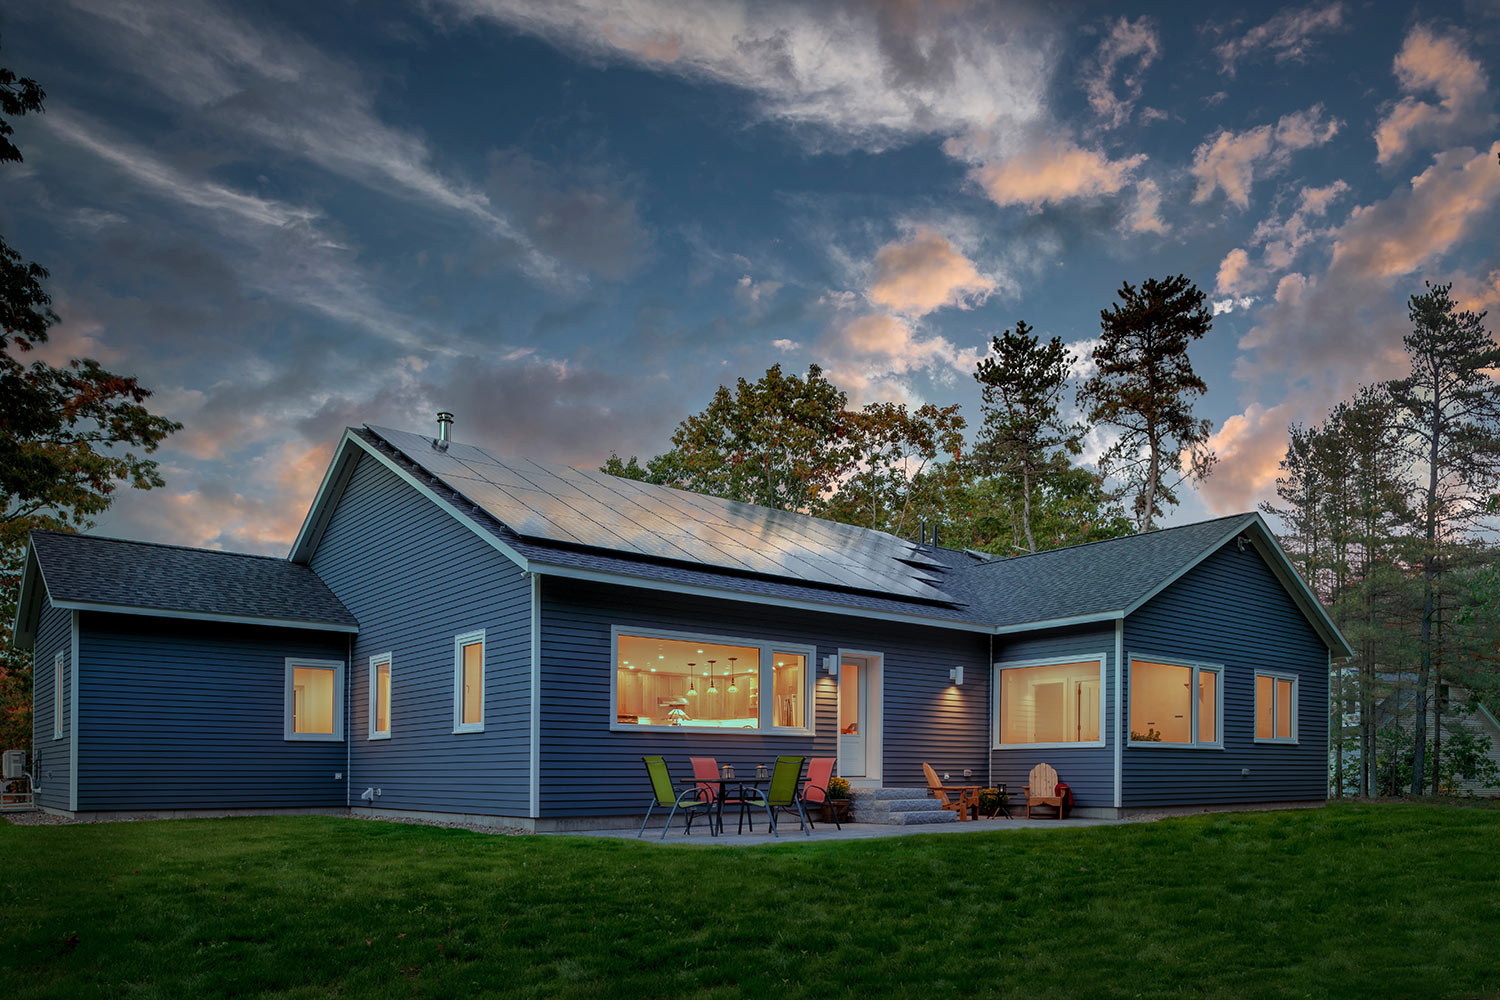 Net Zero Home in Brunswick Maine exterior